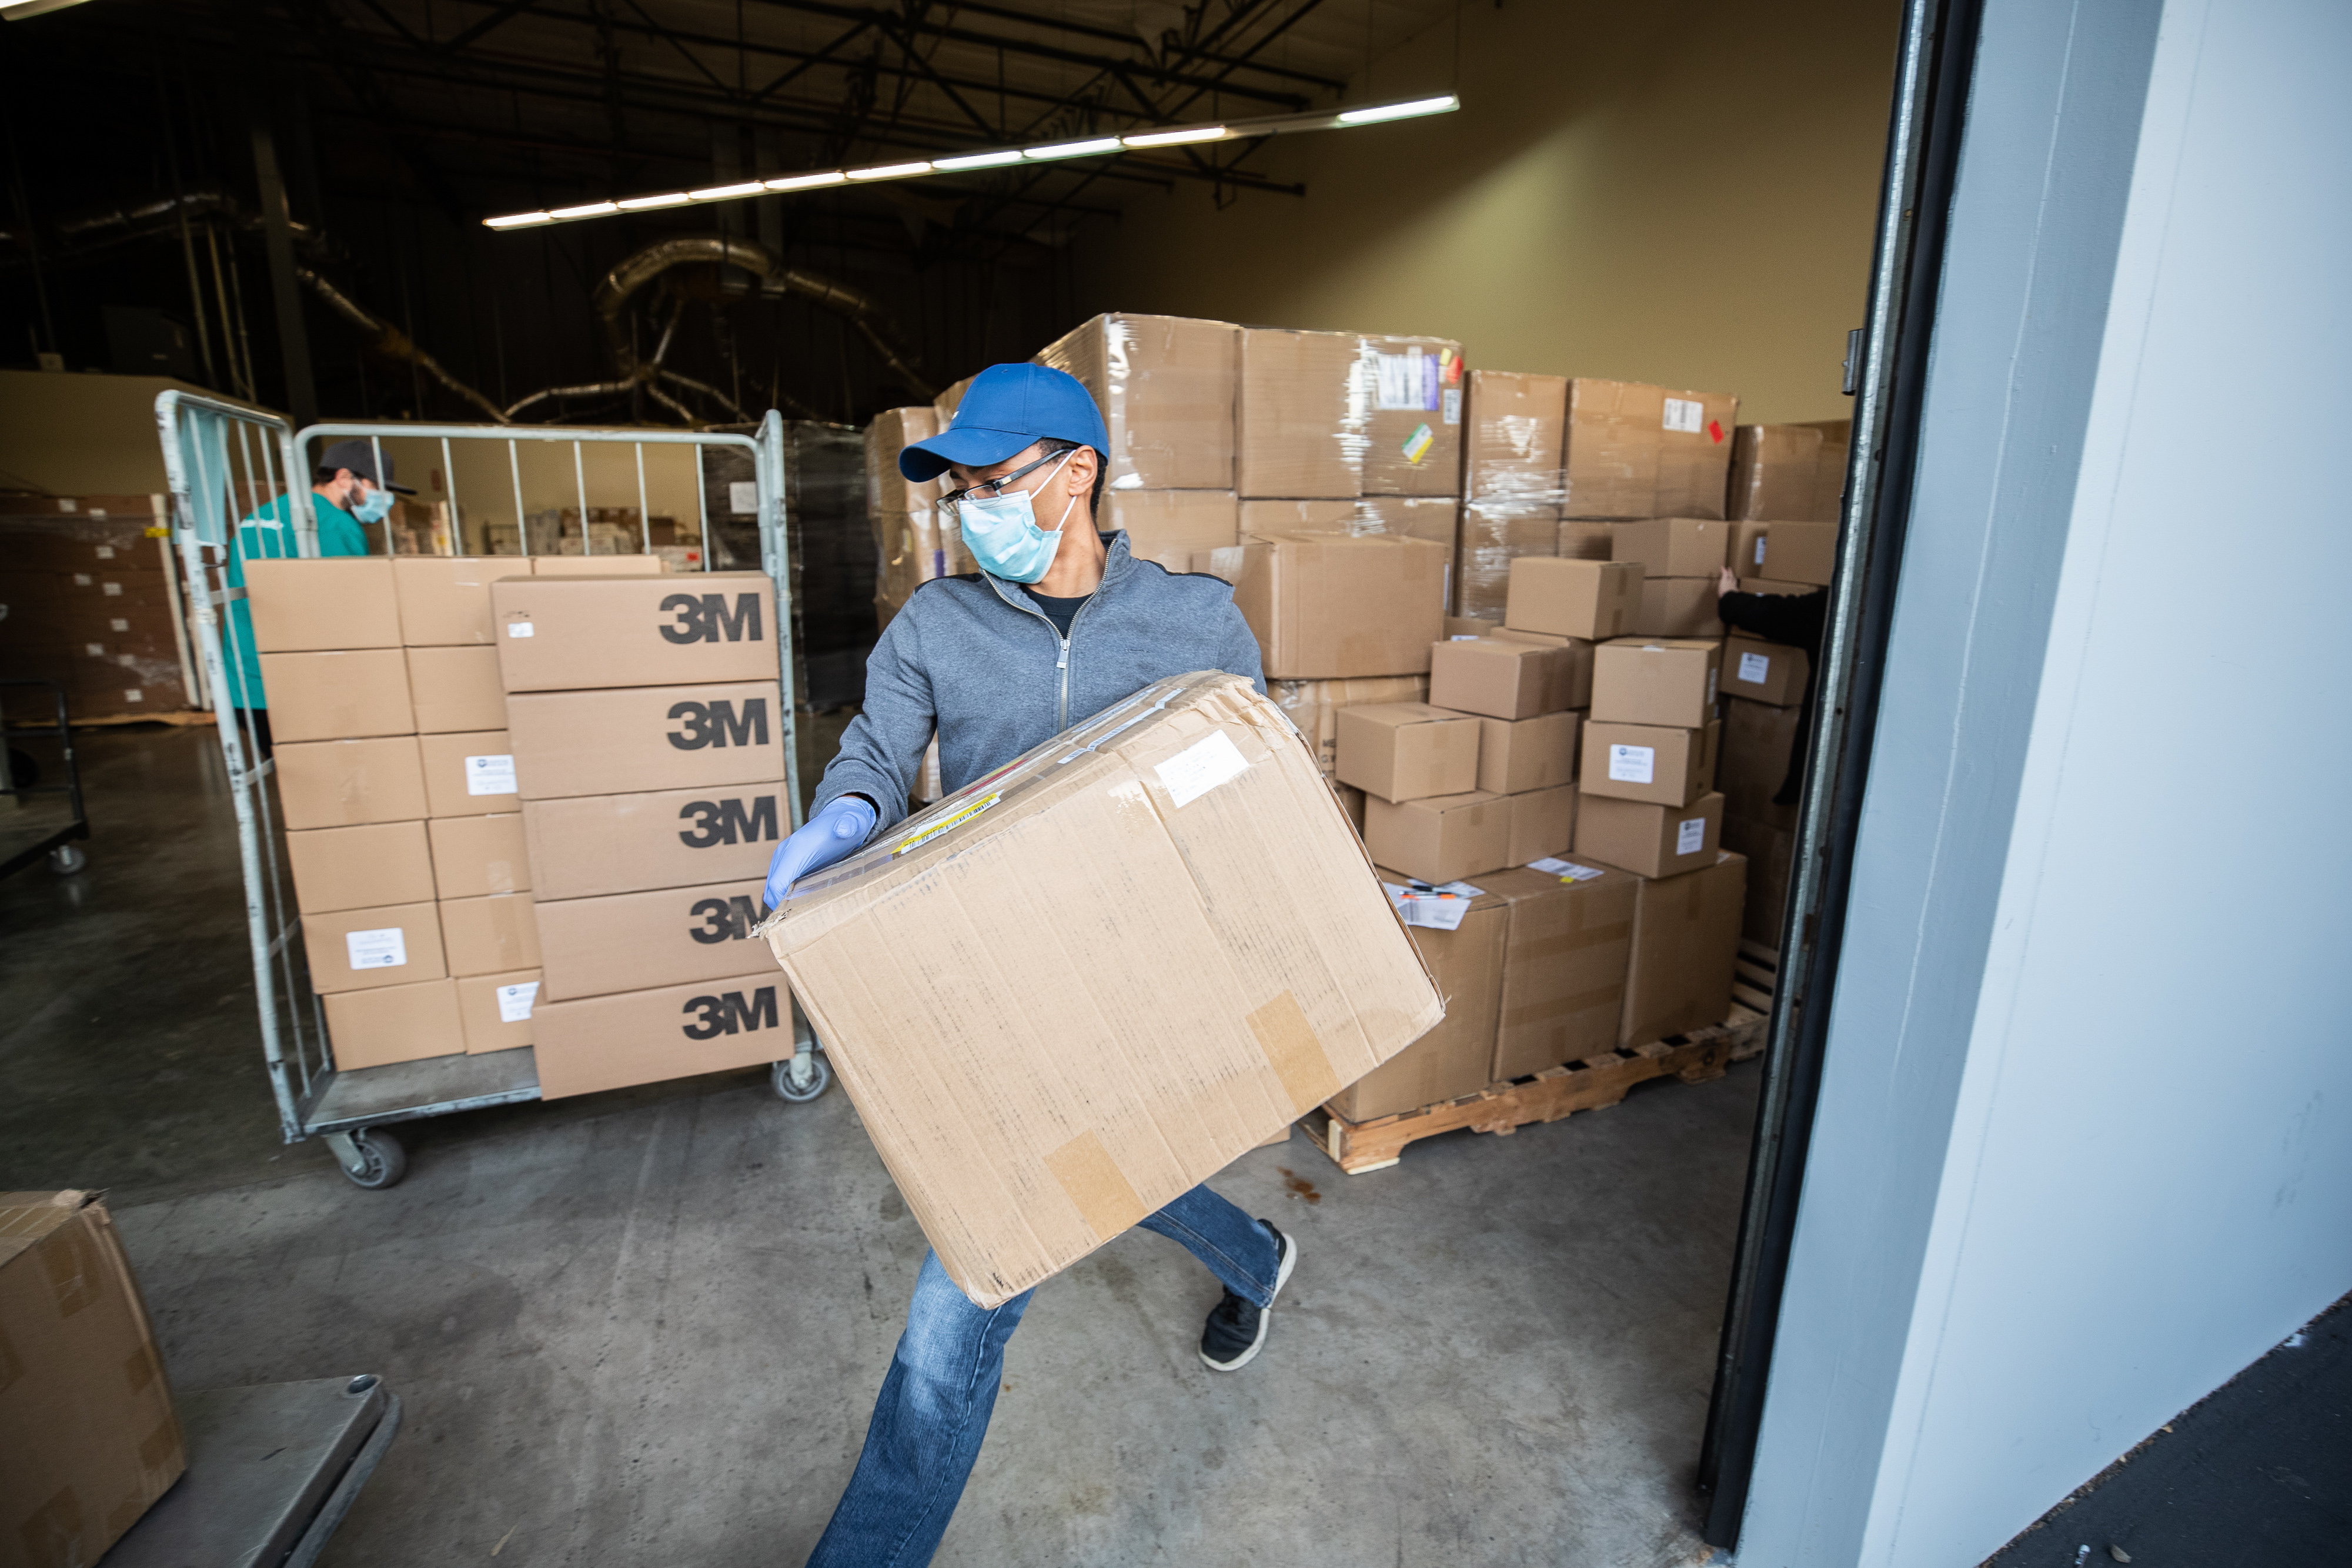 Supply Chain Warehouse PPE and Supply Delivery